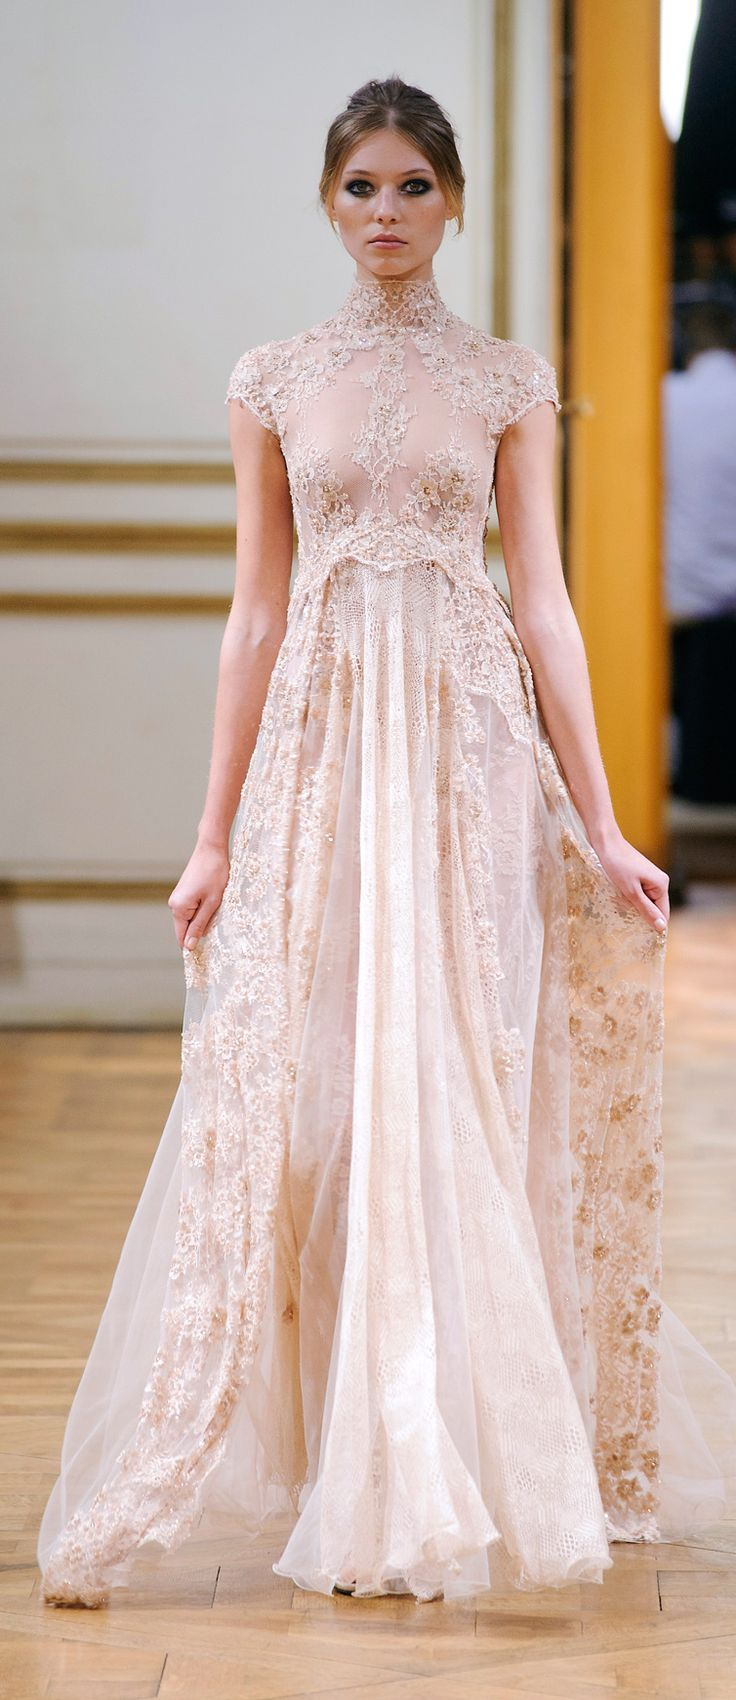 Zuhair Murad Lace Wedding Gown                                                                                                                                                                                 More